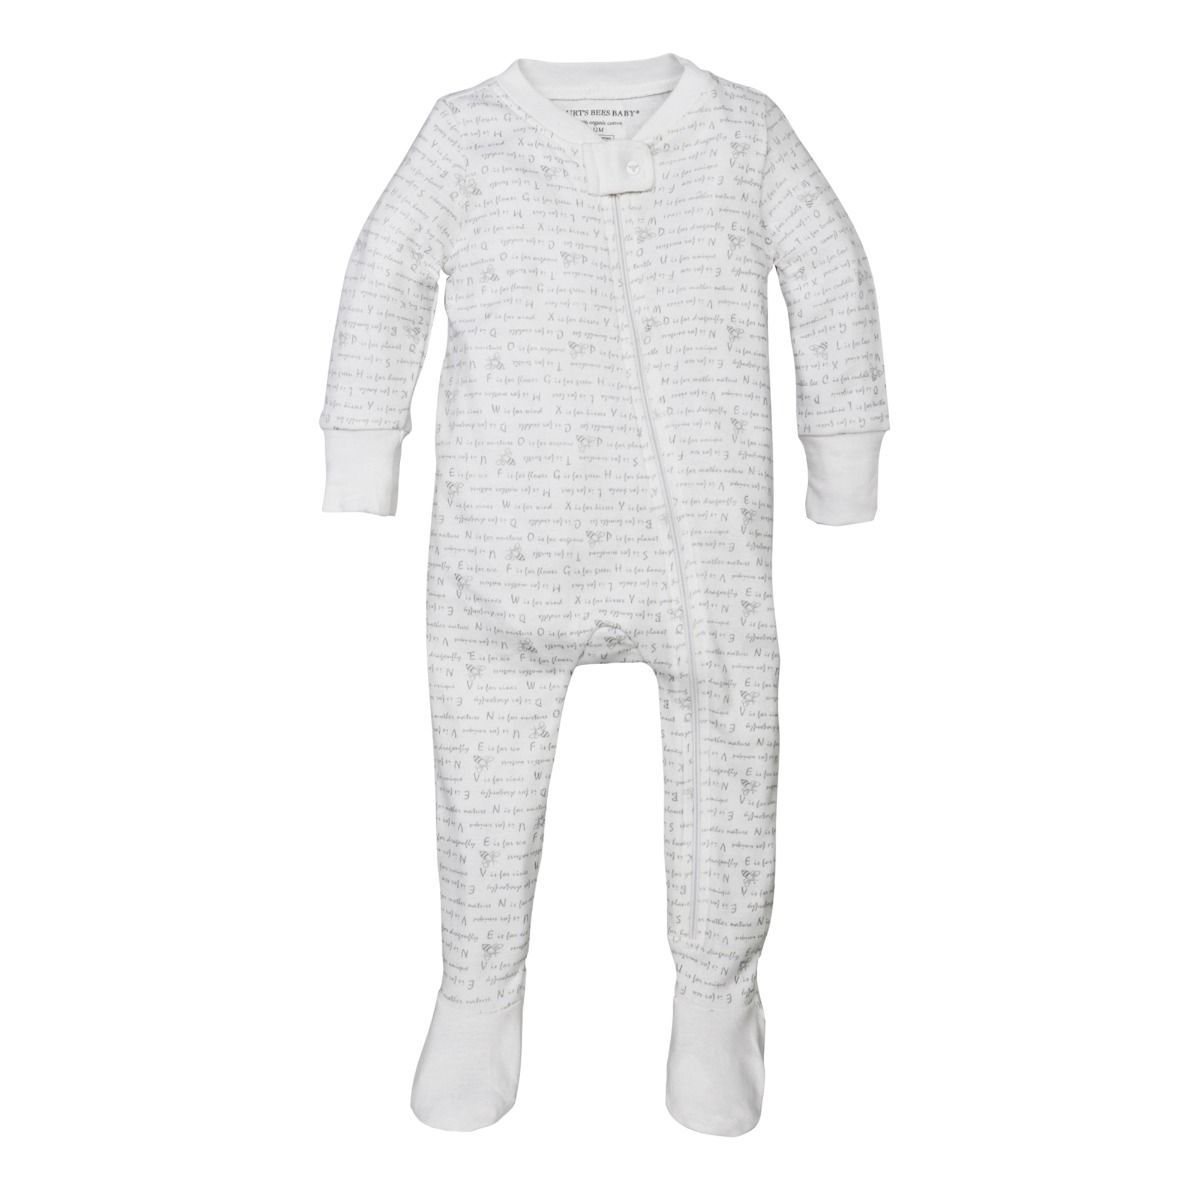 Alphabet Bee Organic Baby Zip Up Footed Pajamas Girl Outfits